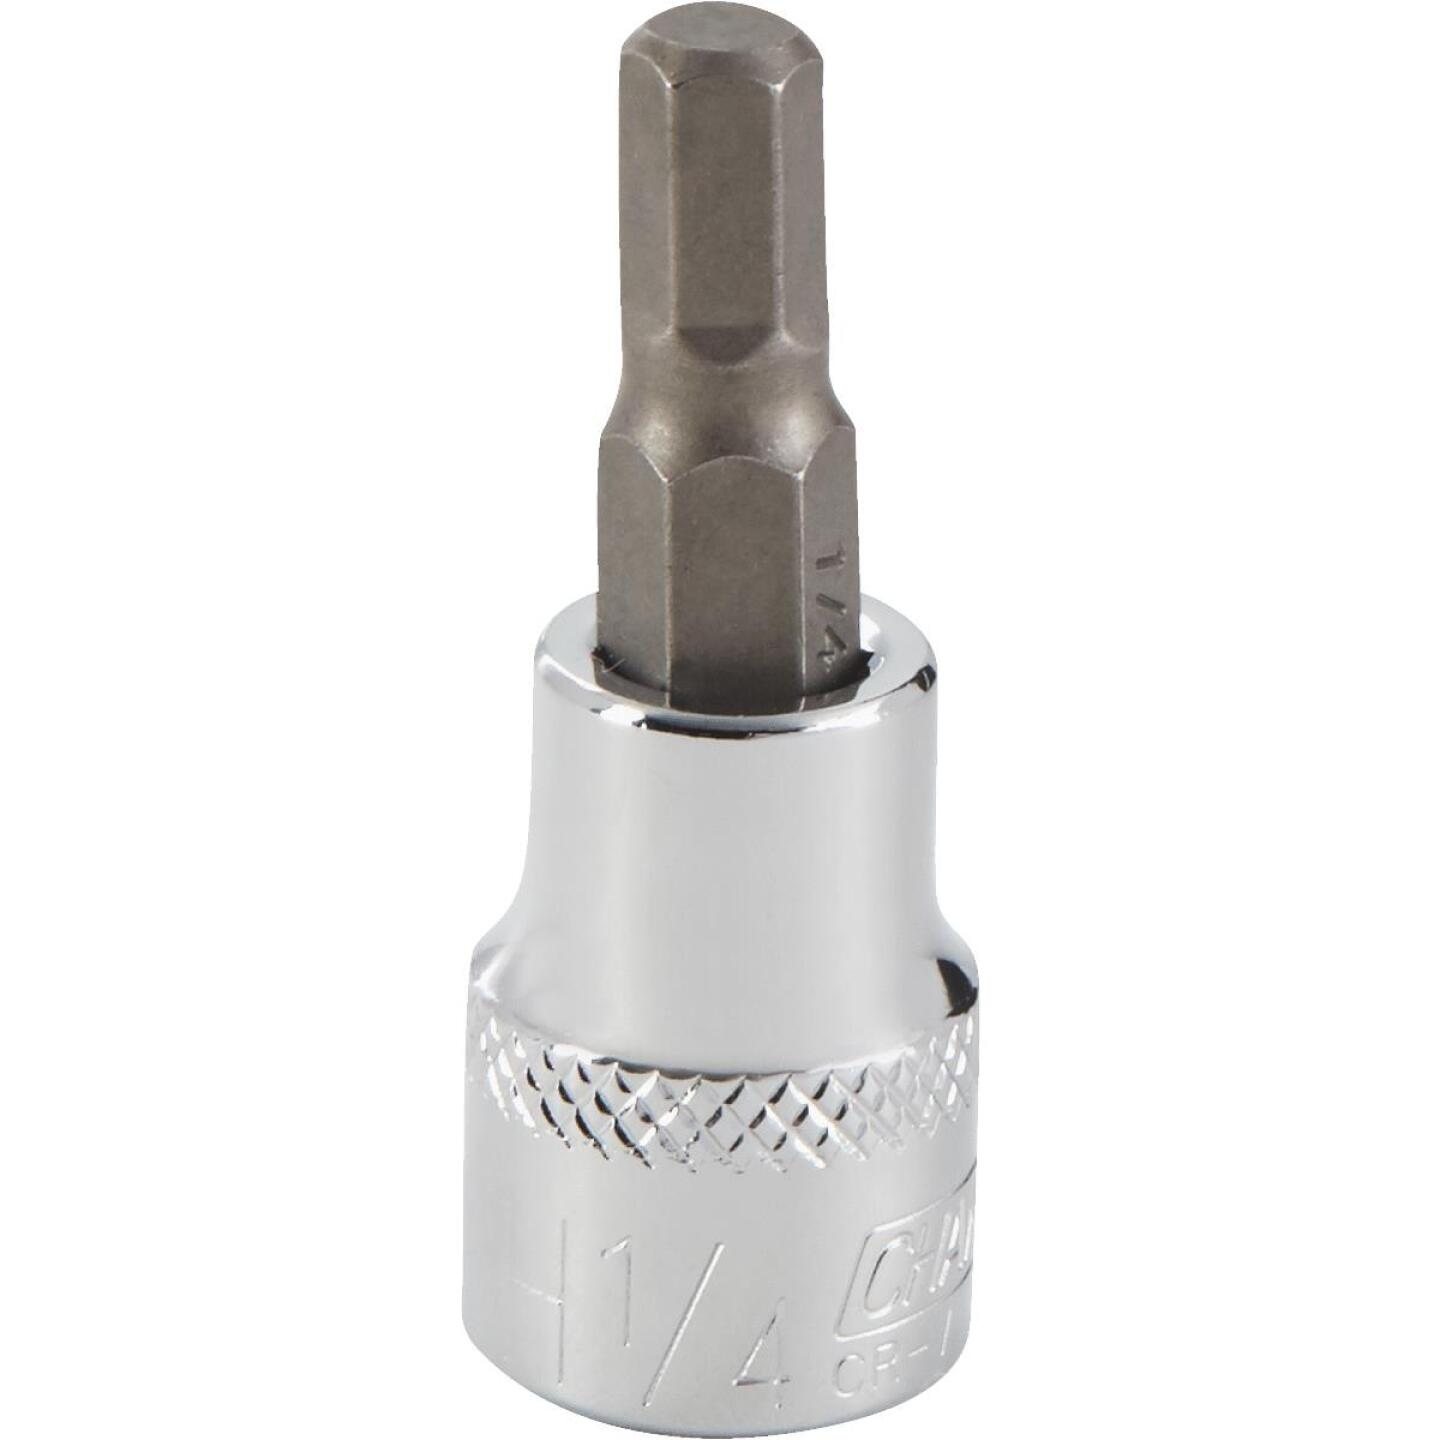 Channellock 3/8 In. Drive 1/4 In. 6-Point Standard Hex Bit Socket Image 1